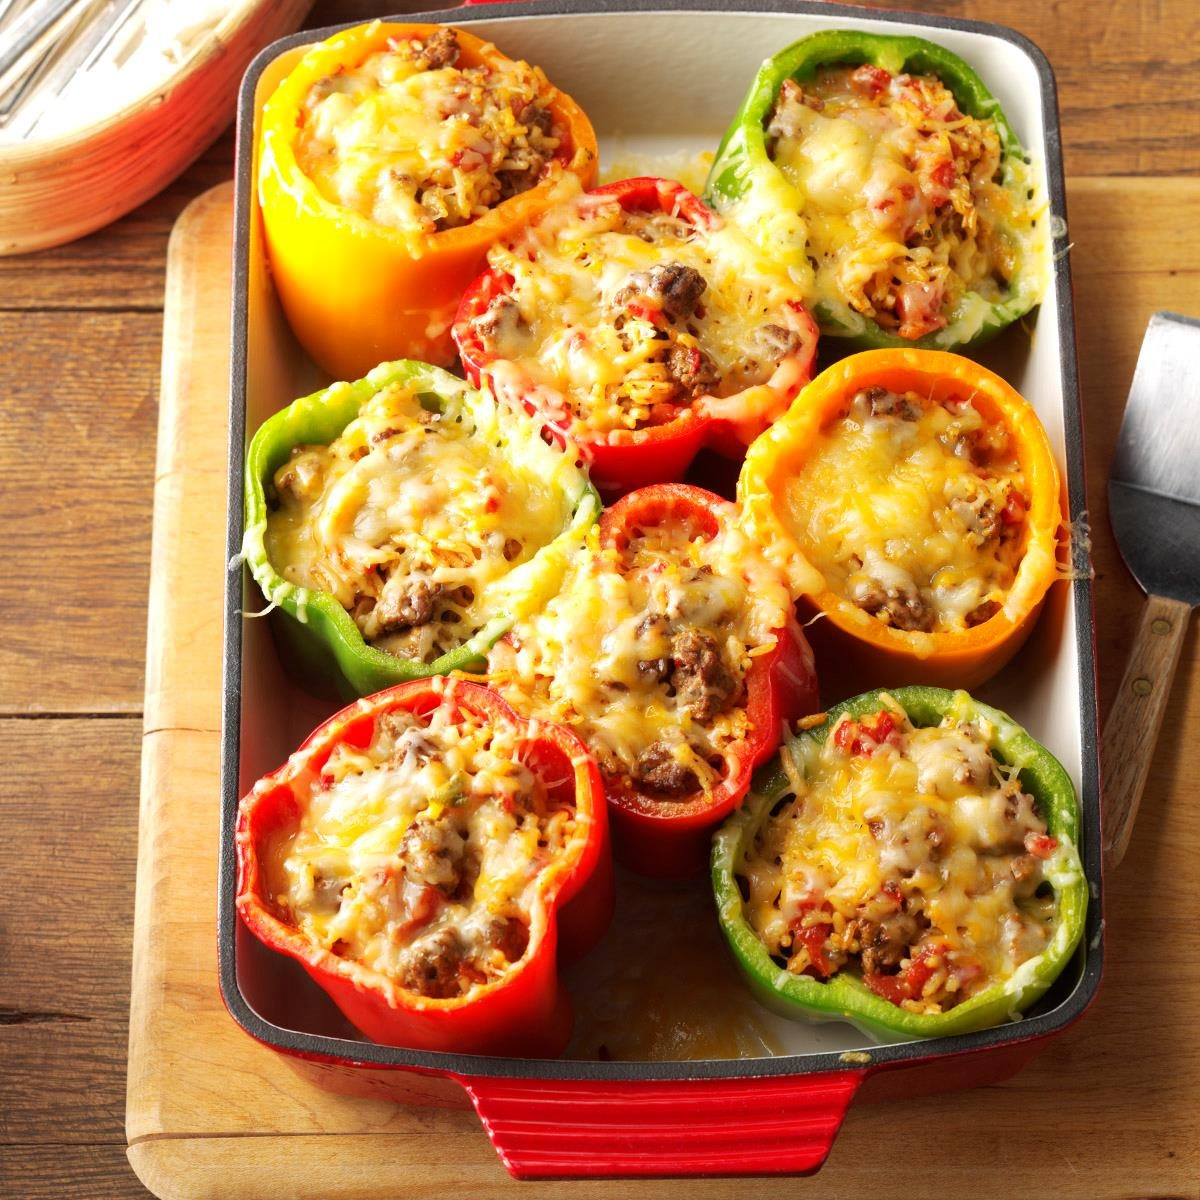 Top 10 Mexican Dinner Recipes: Mexican Stuffed Peppers Recipe